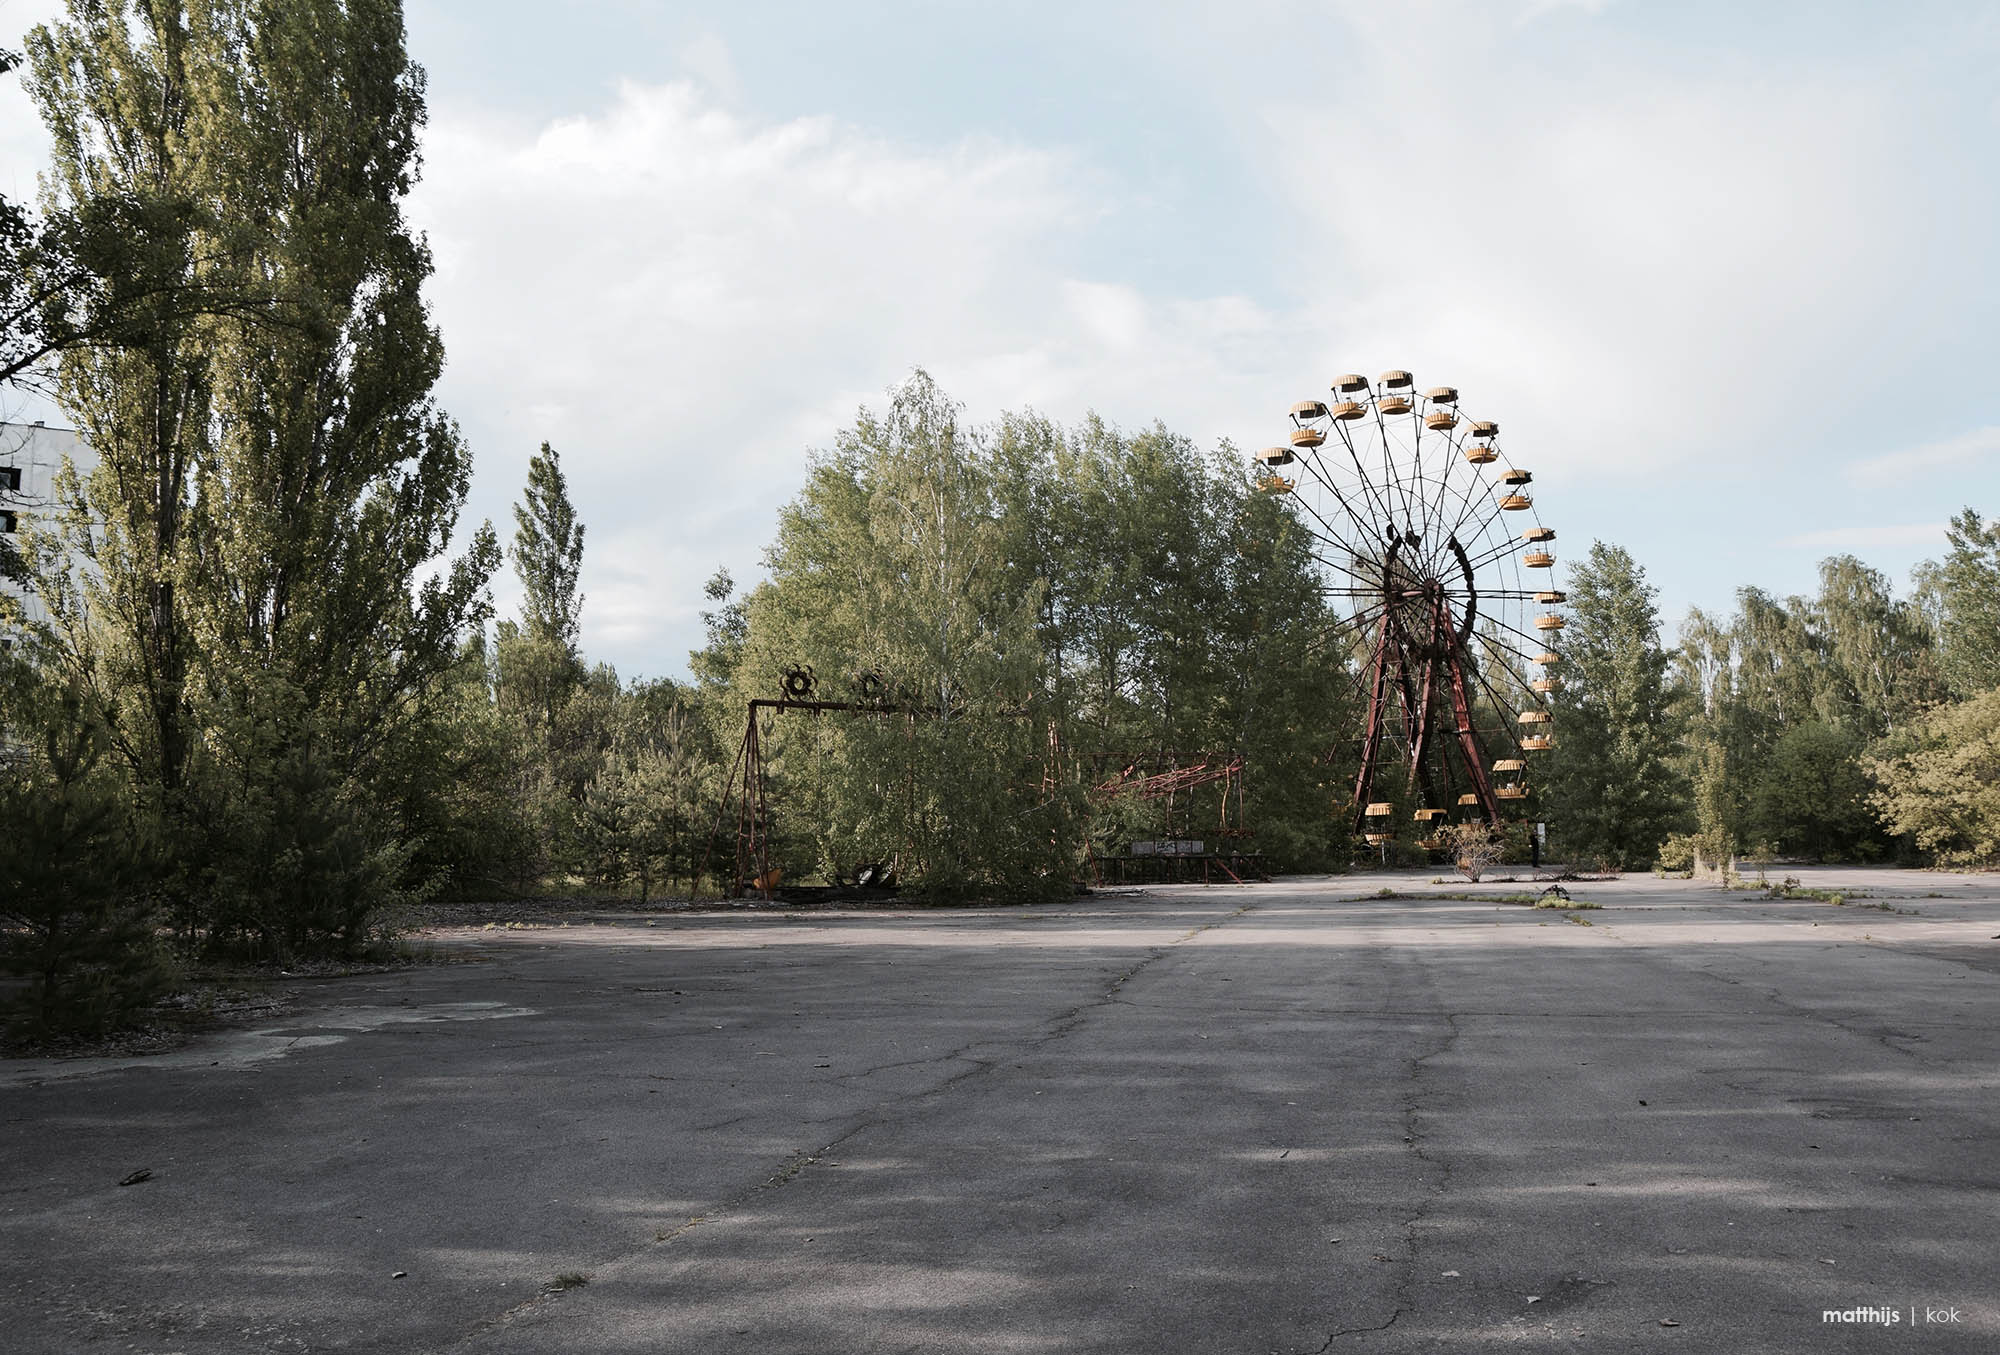 Pripyat Amusement Park, Chernobyl | Photo by Matthijs Kok